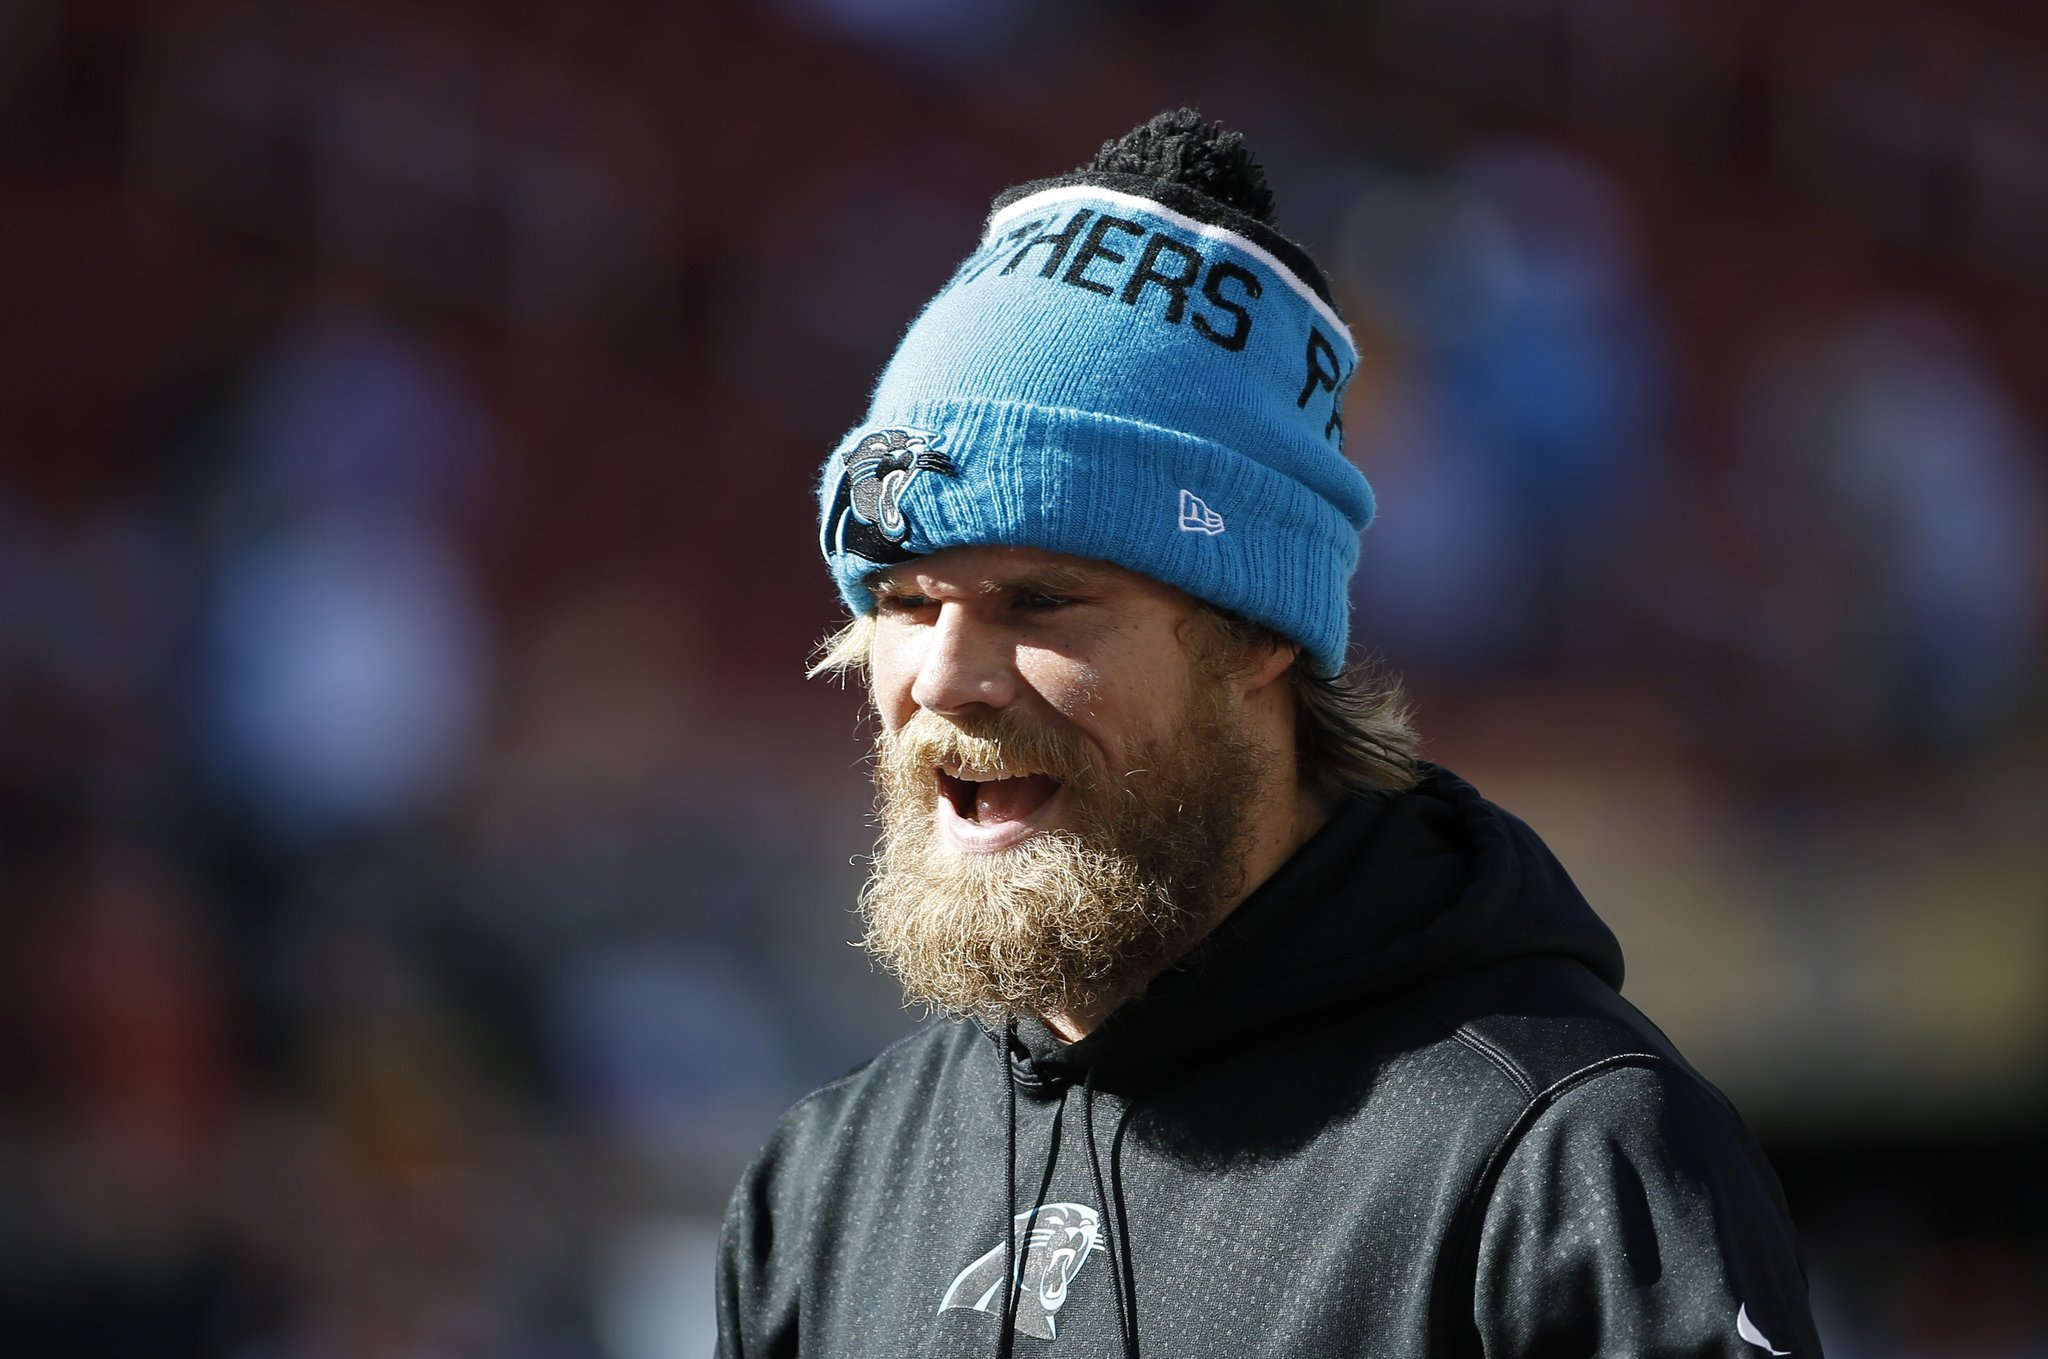 Panthers Greg Olsen shaves beard All good things must e to